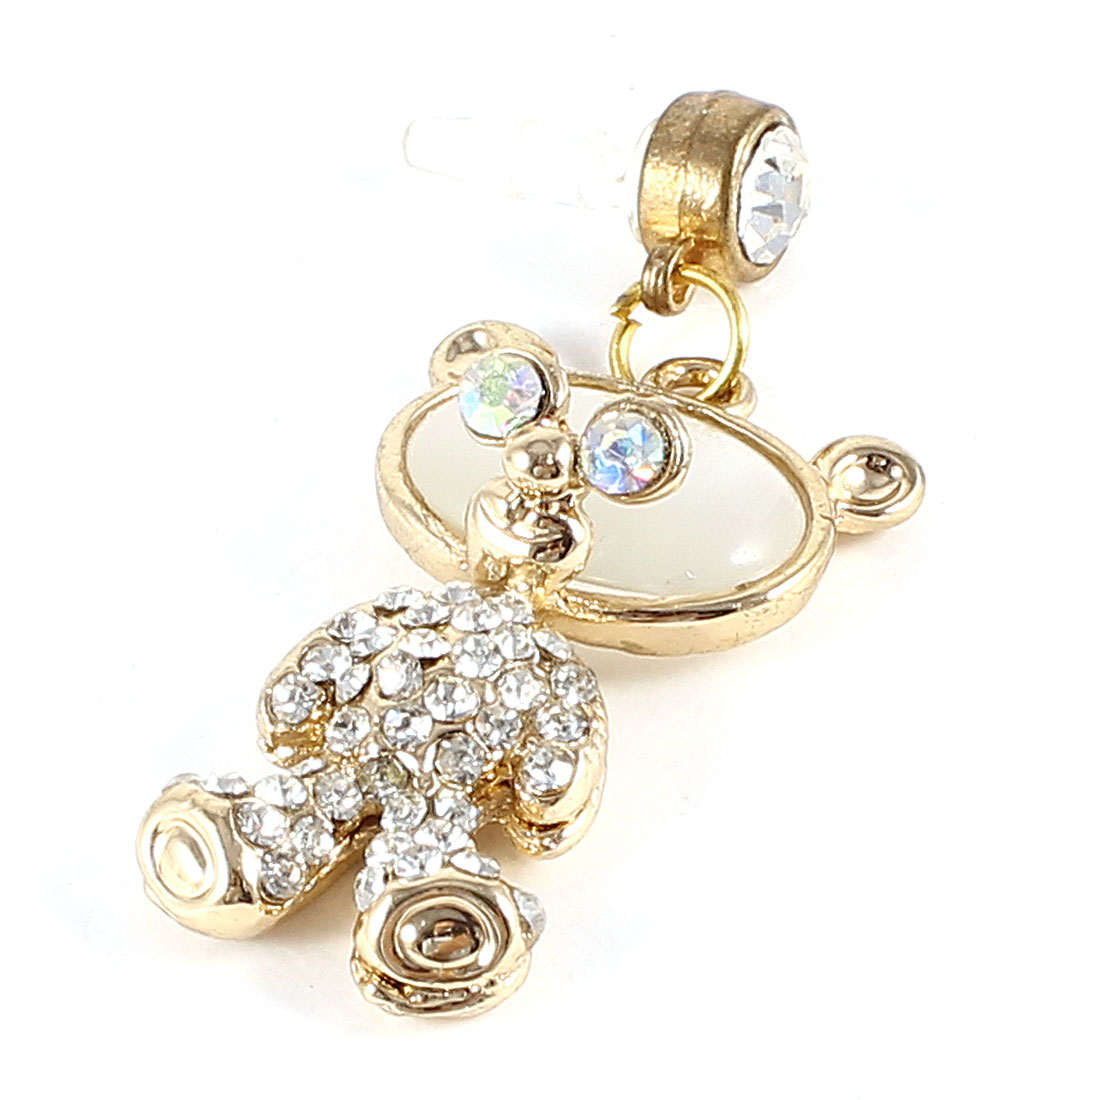 Faux Rhinestone Accent Bear Shape Pendant 3.5mm Dust Ear Cap White Gold Tone for Smart Phone